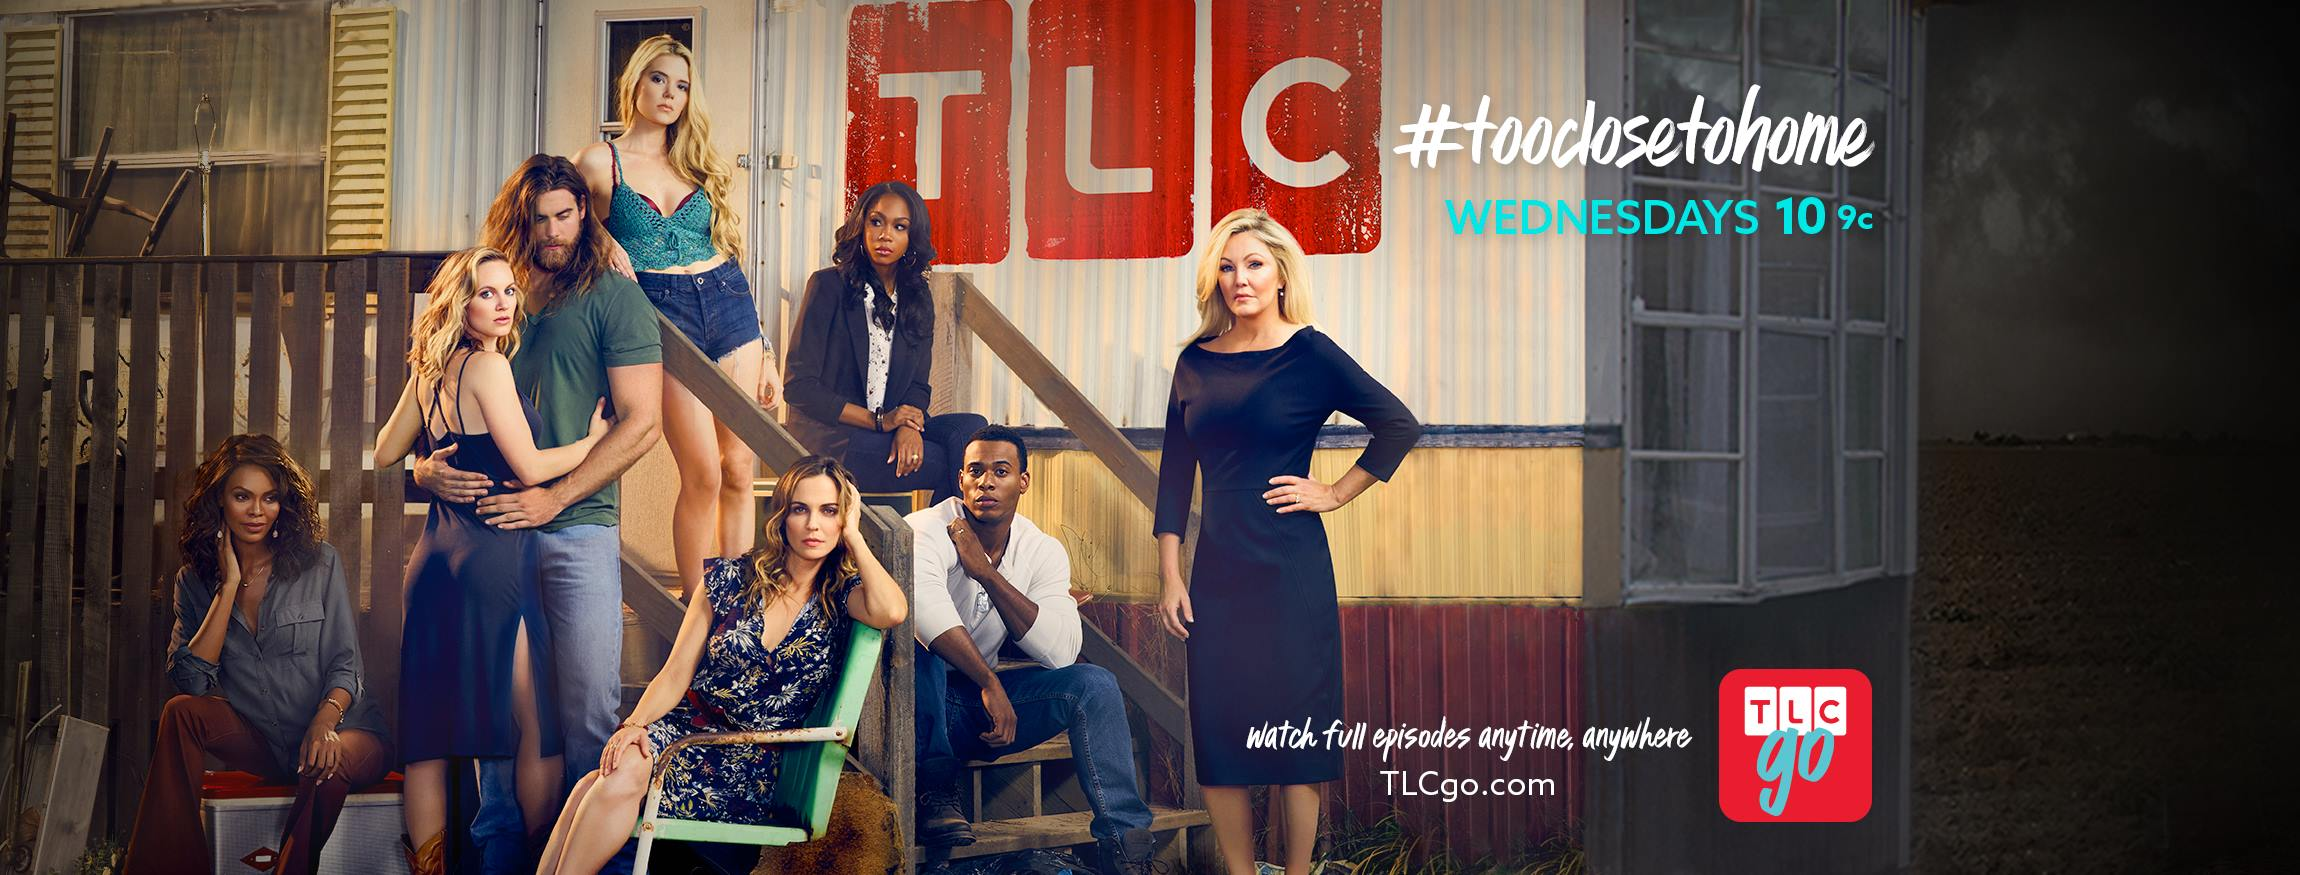 Get Out Tlc Tv Show Full Episodes too close to home tlc tv show: ratings (cancel or season 3